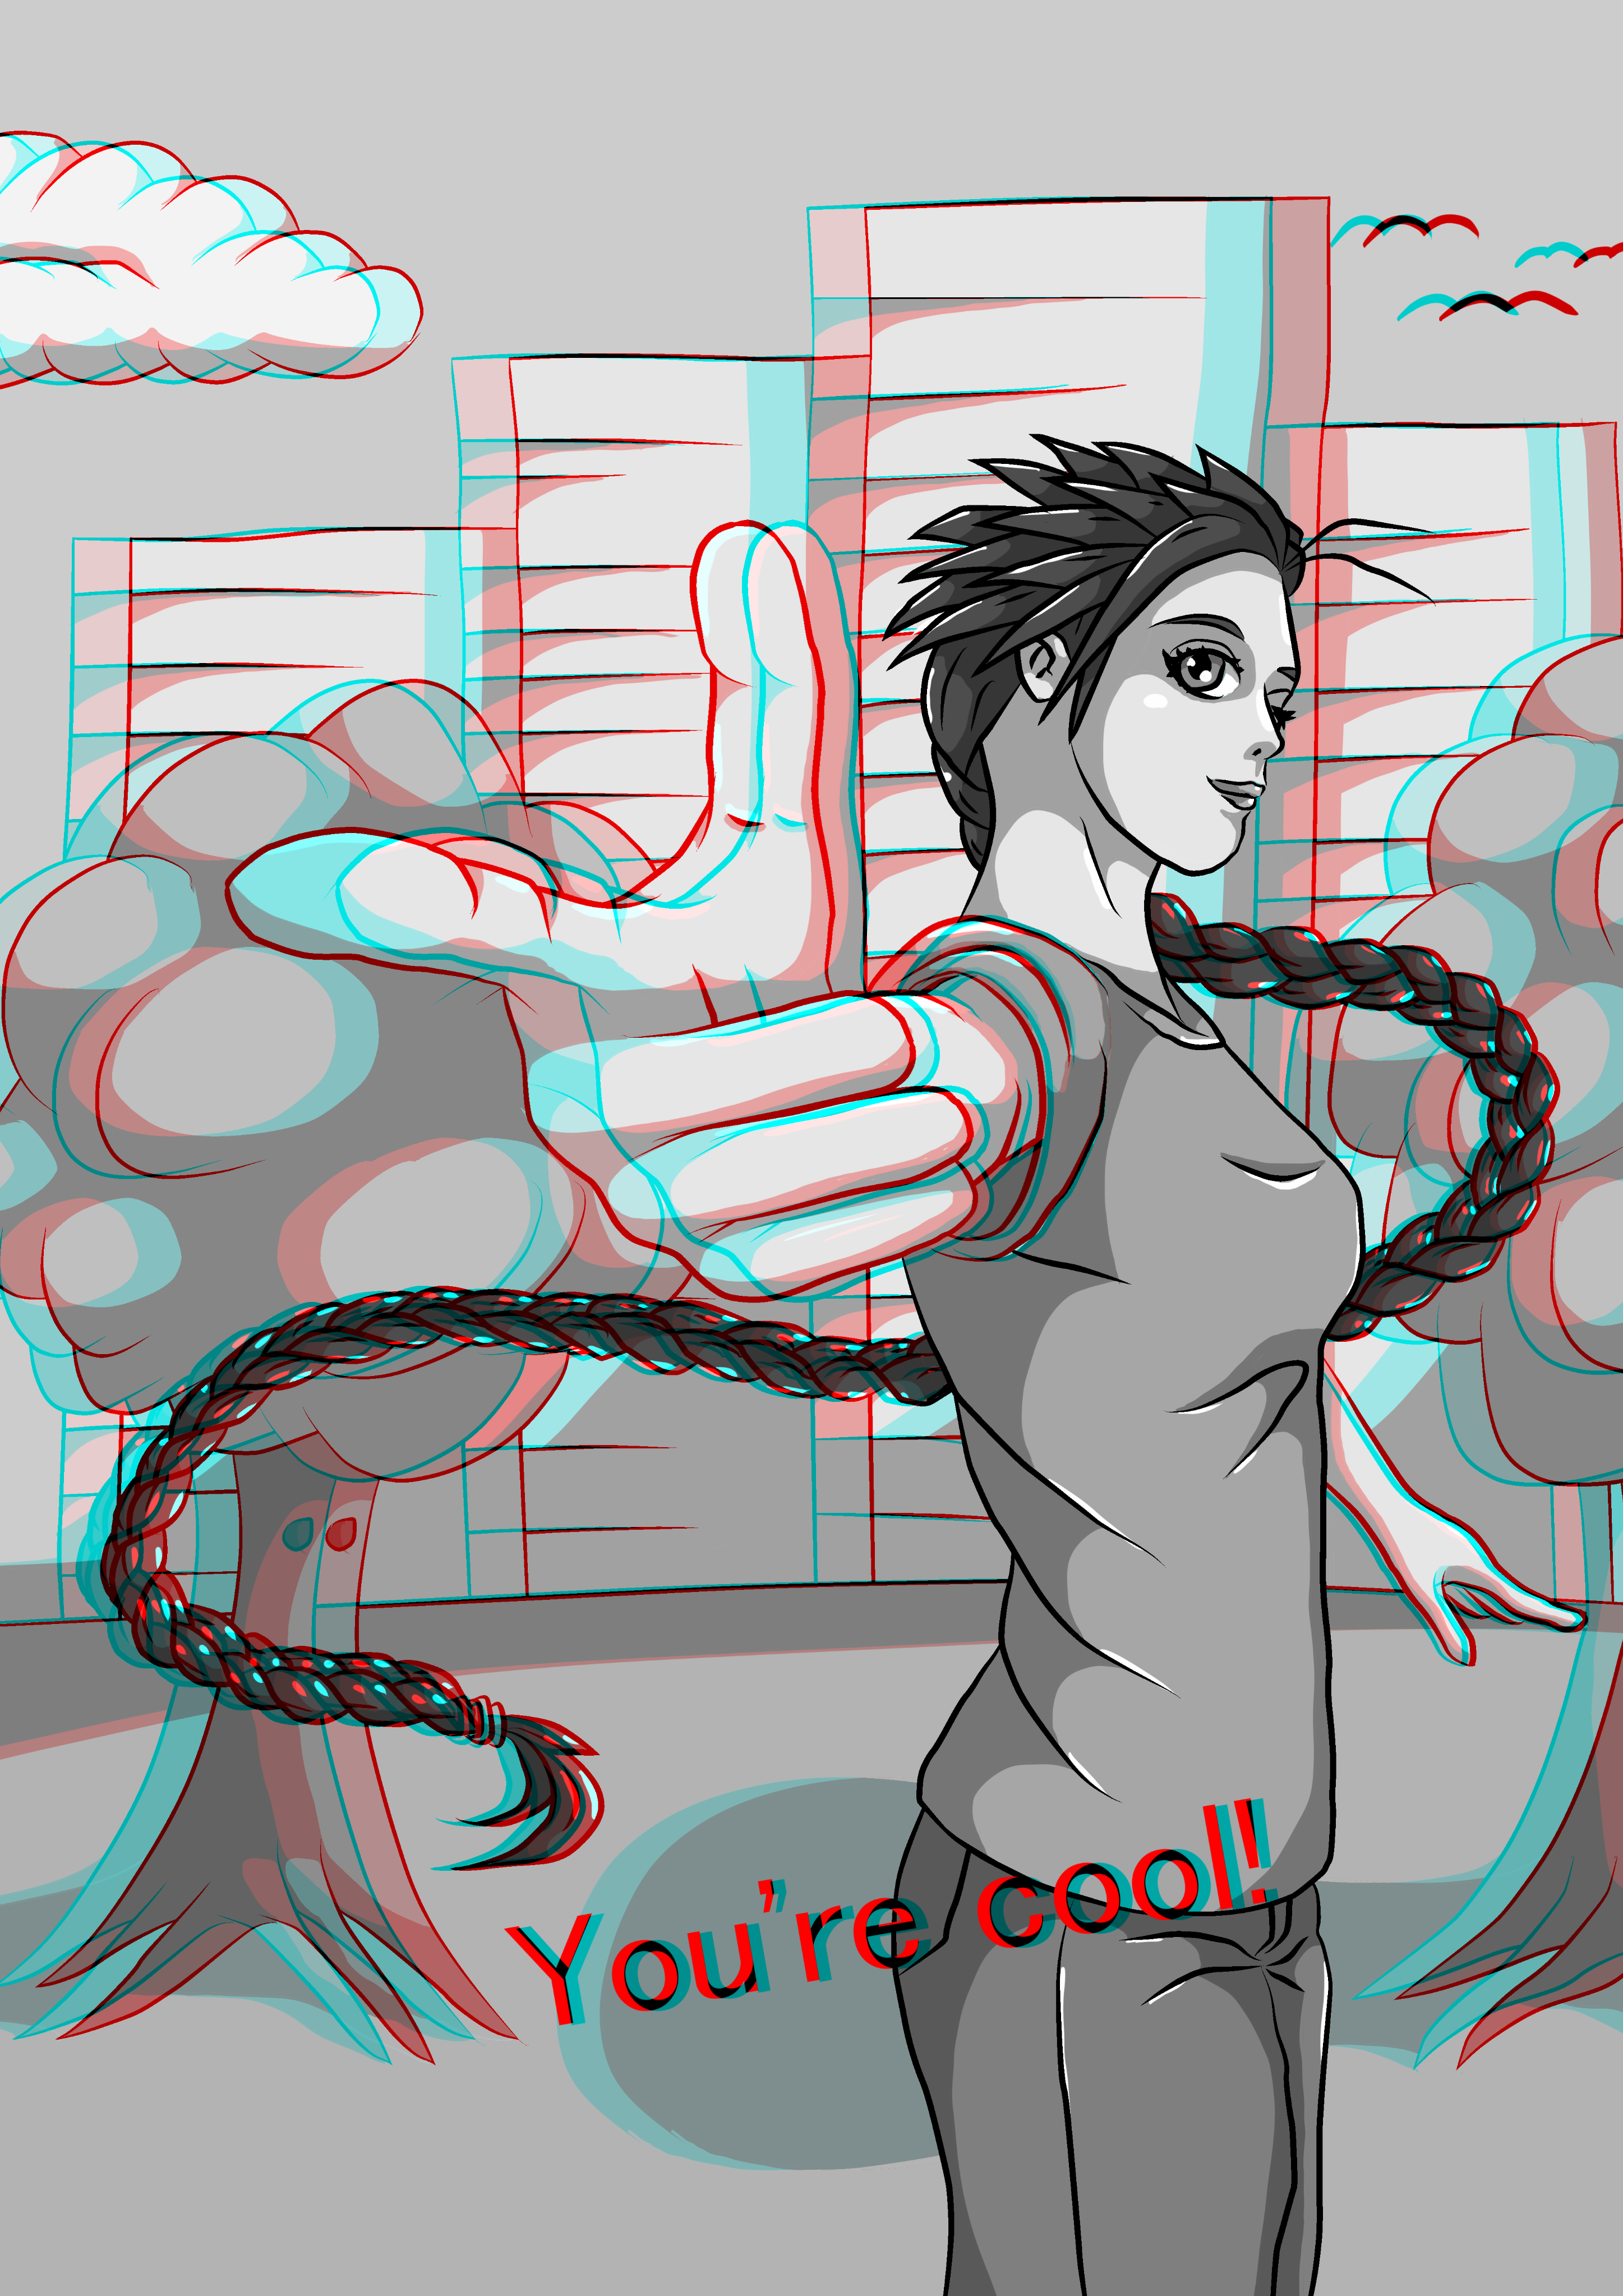 You're cool! 3D anaglyph